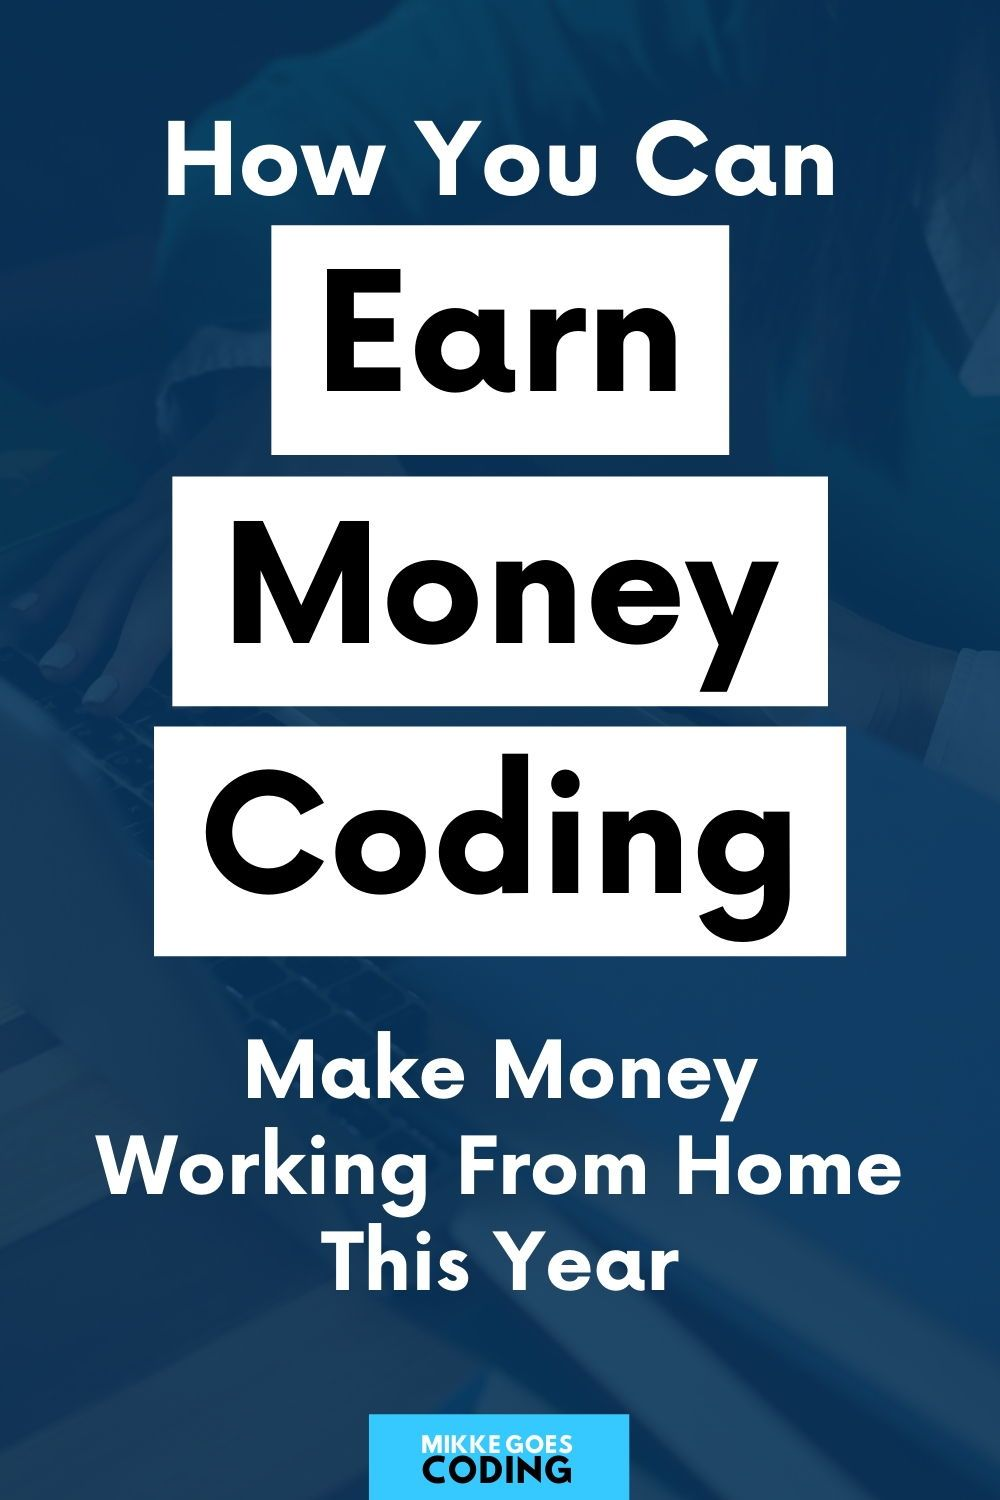 How To Make Money Programming From Home